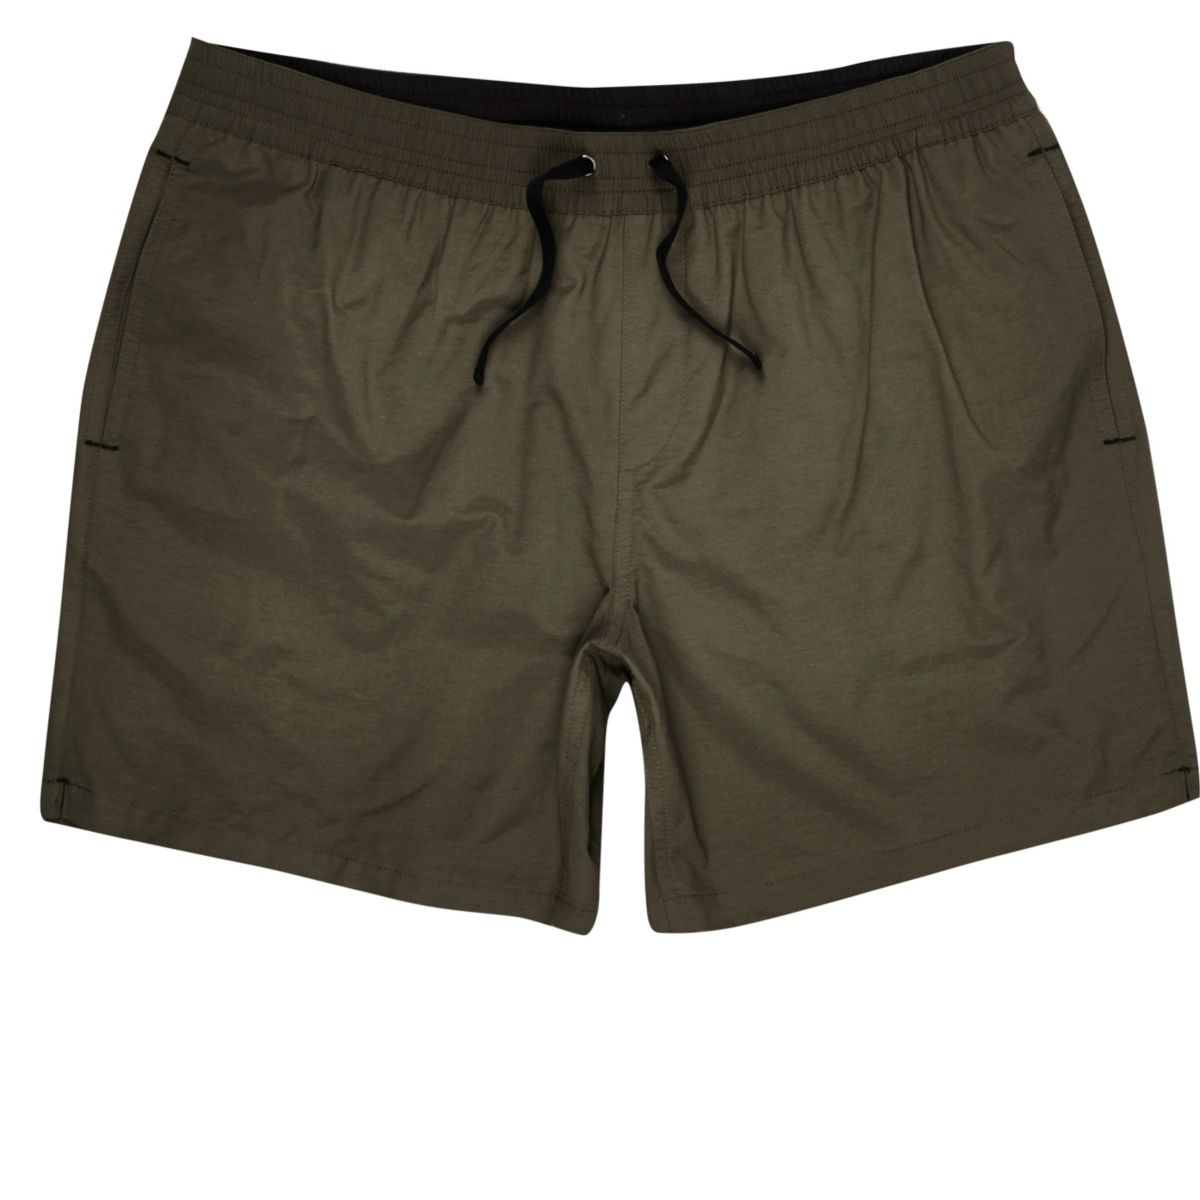 Khaki green swim trunks